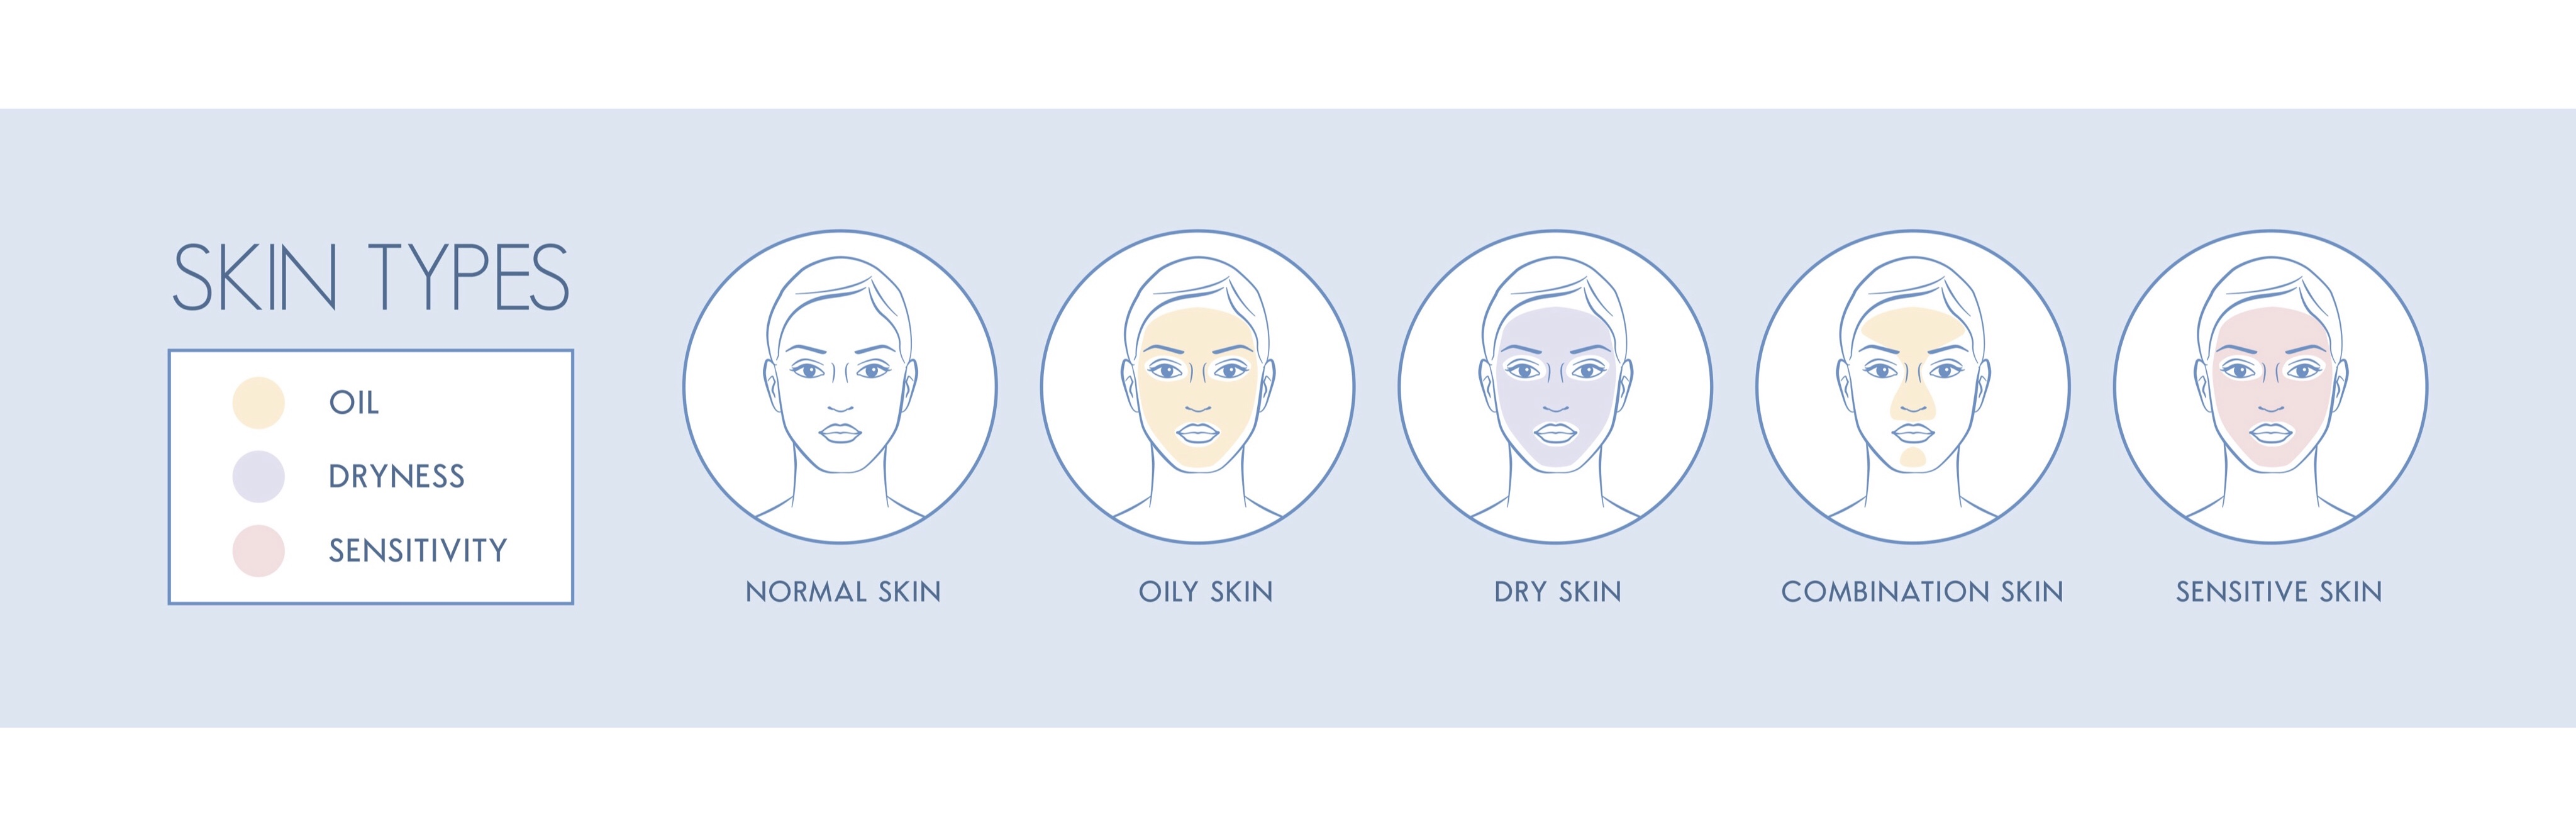 The different kinds of skin types